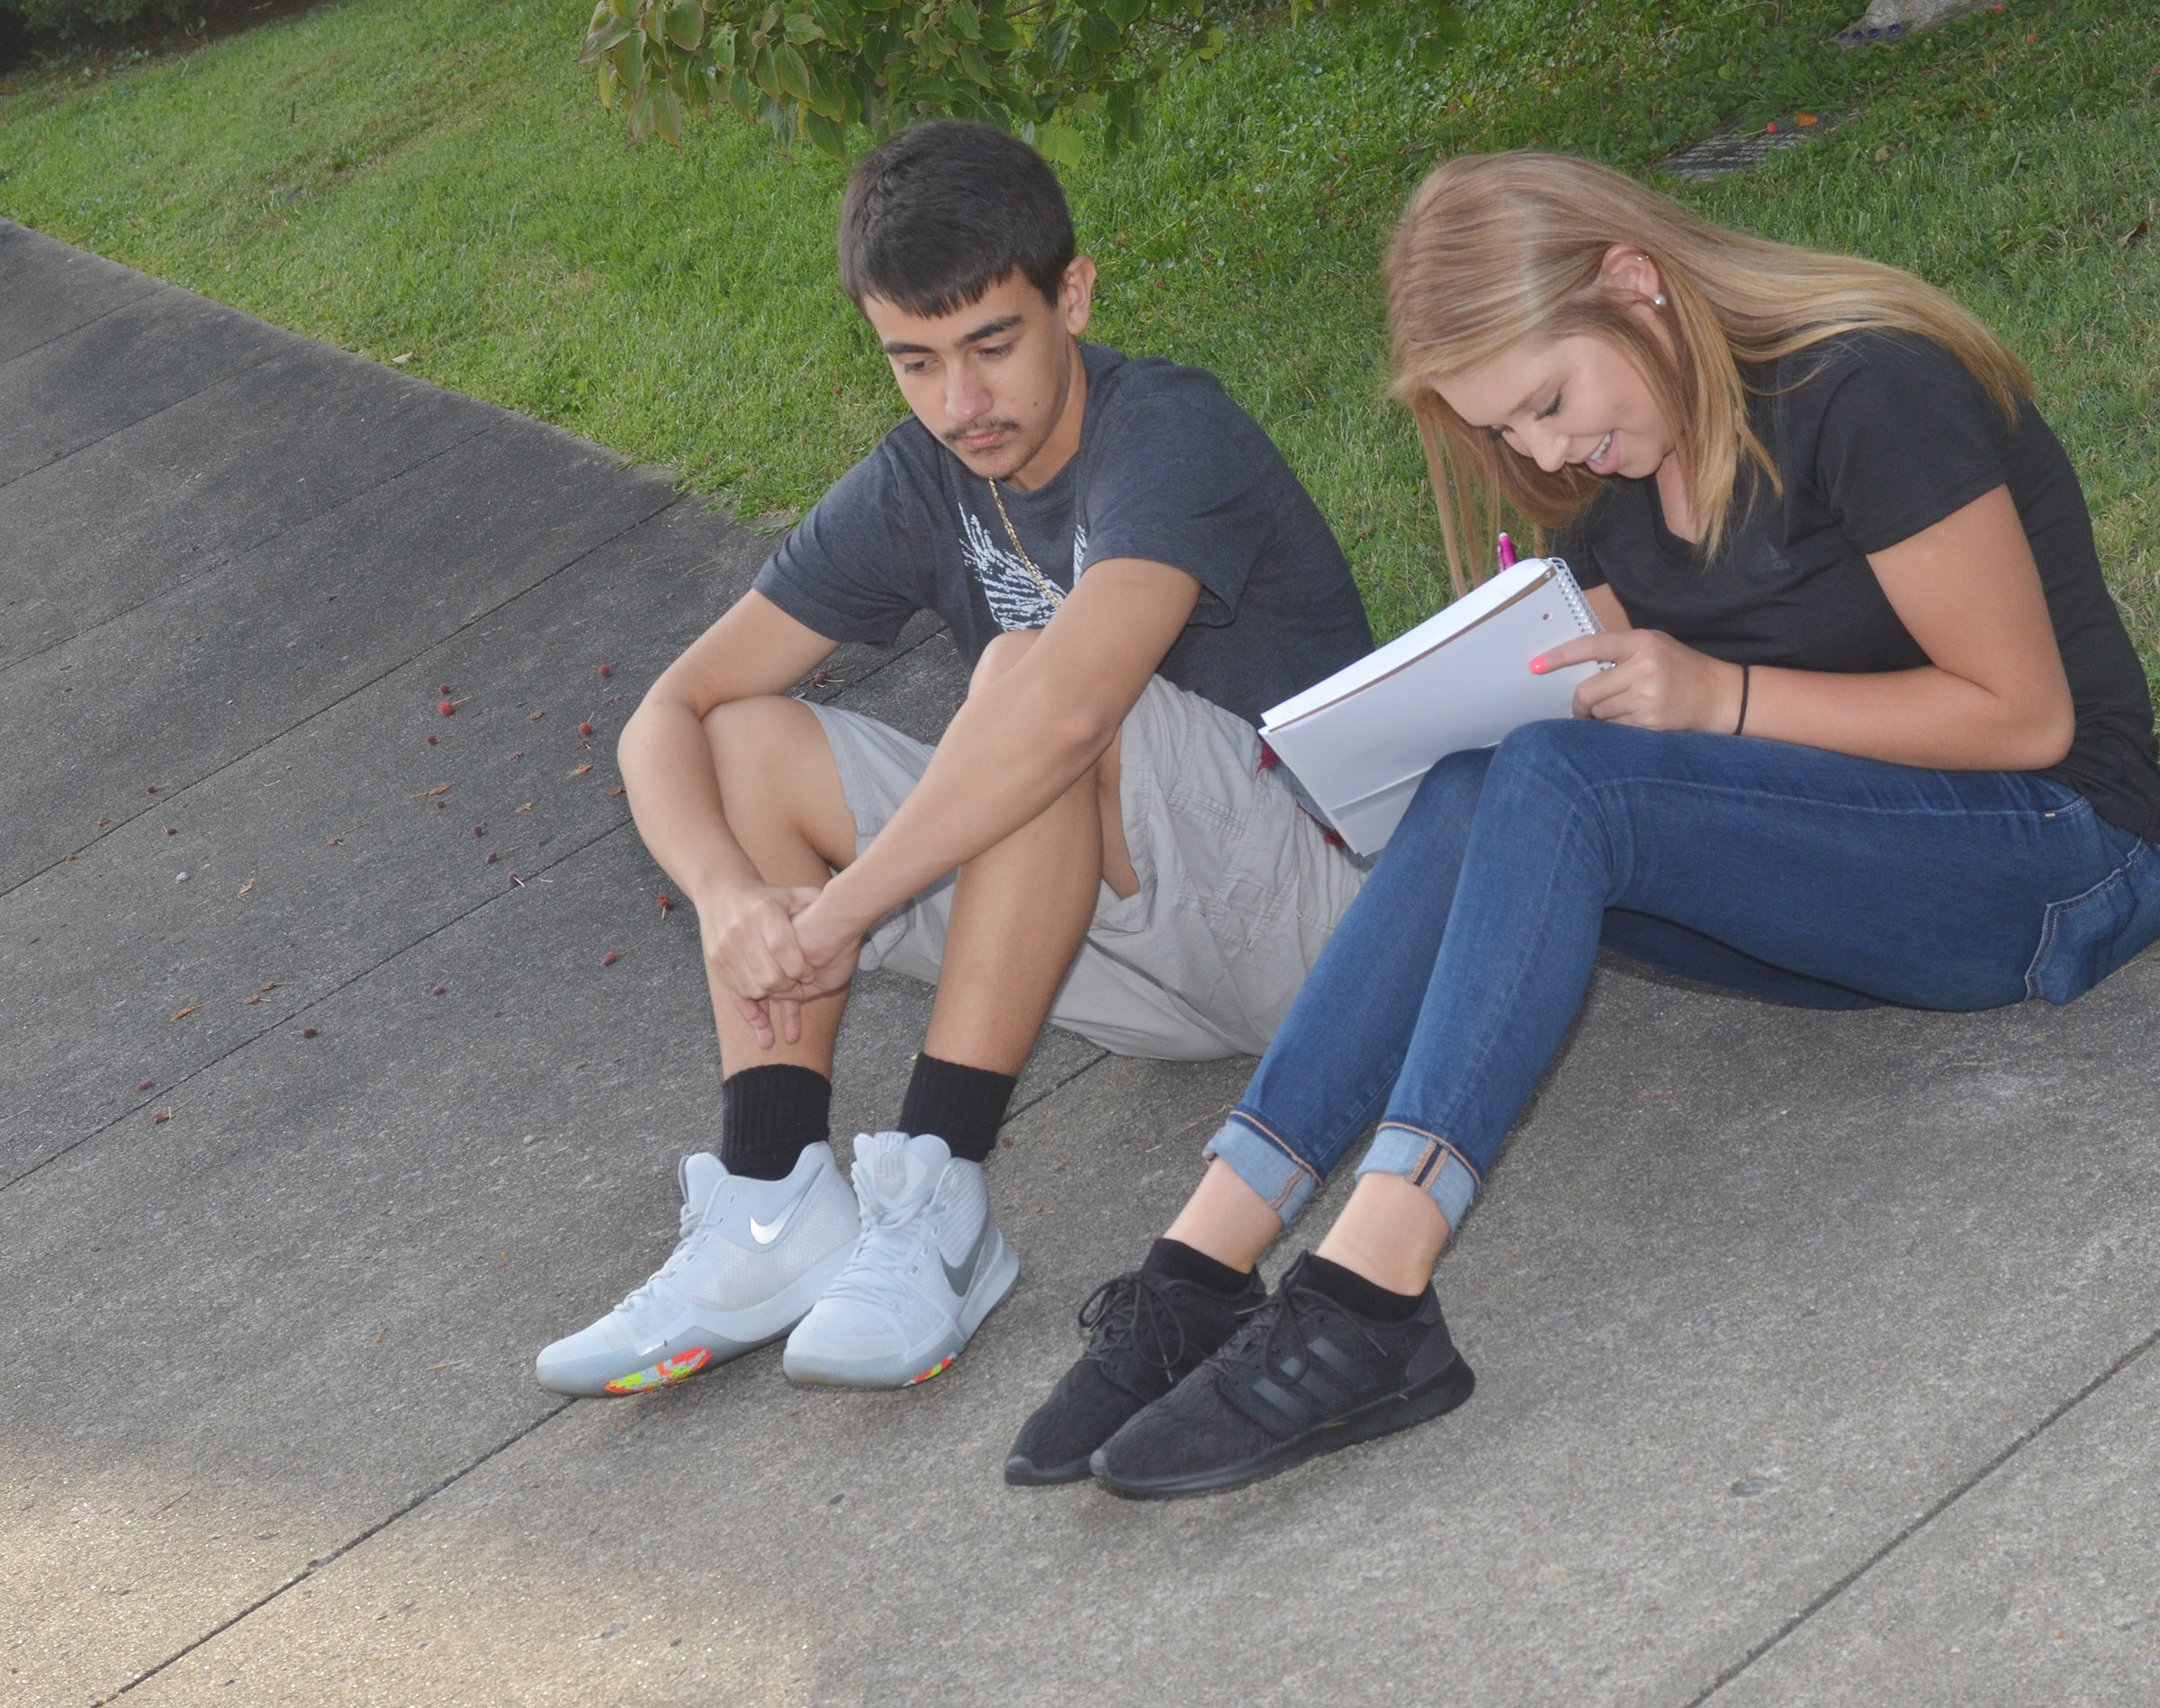 CHS juniors Glenn Lamer, at left, and Chloe Gupton work together to describe their surroundings as they study the concept of contextualization.